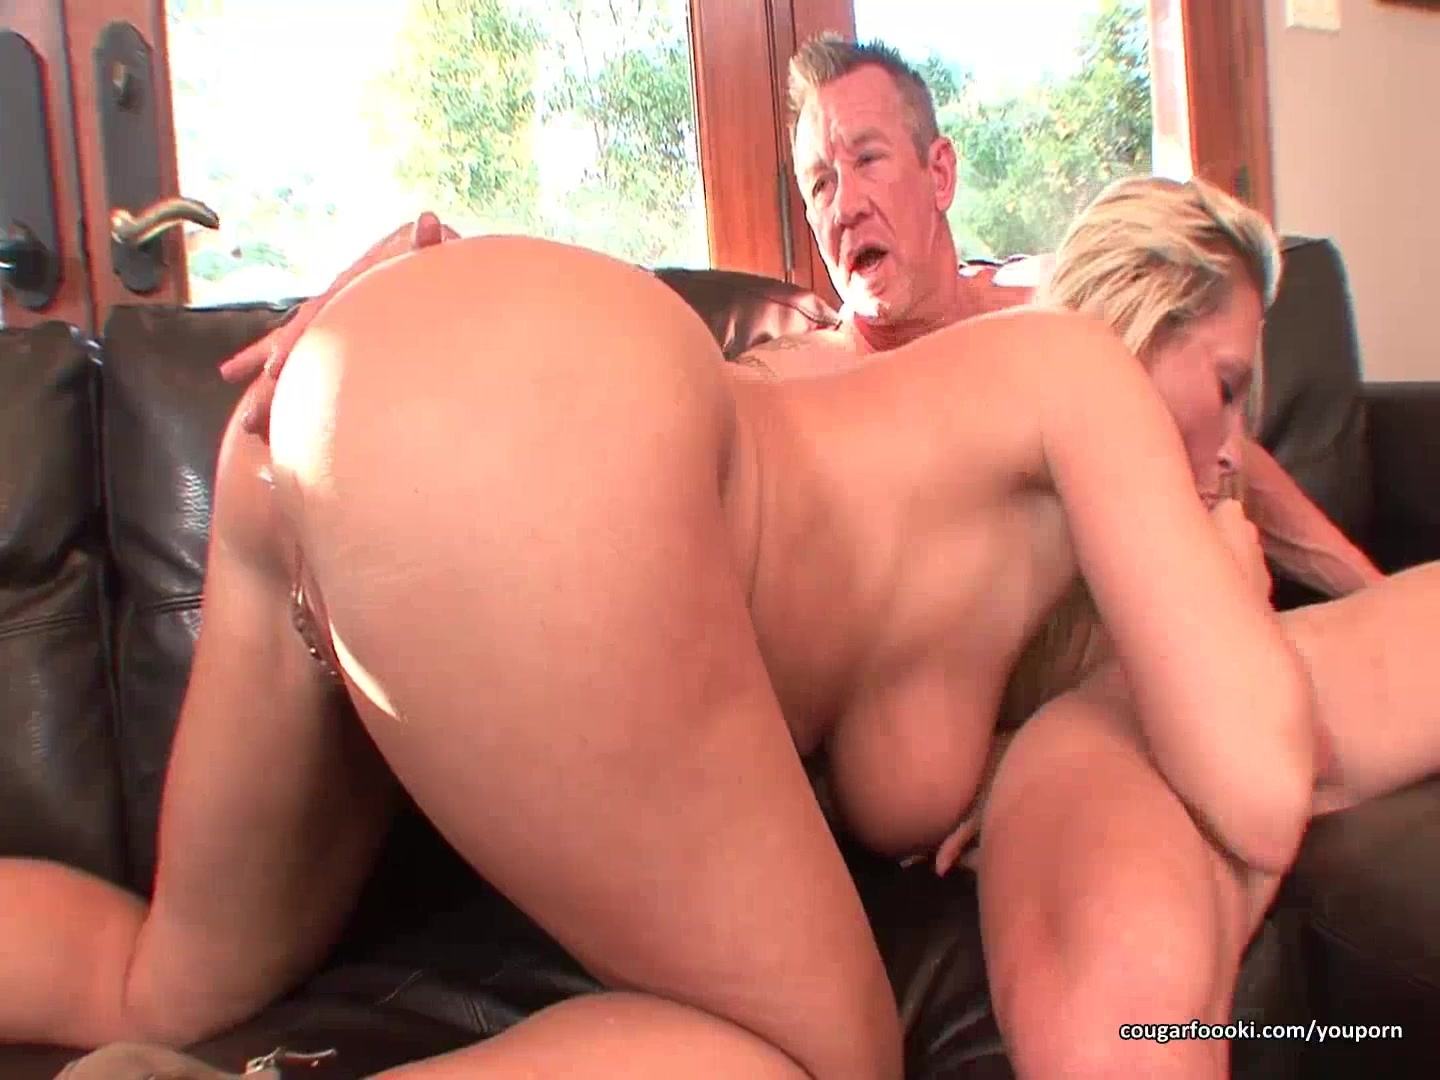 Awesome MILF gets banged hard